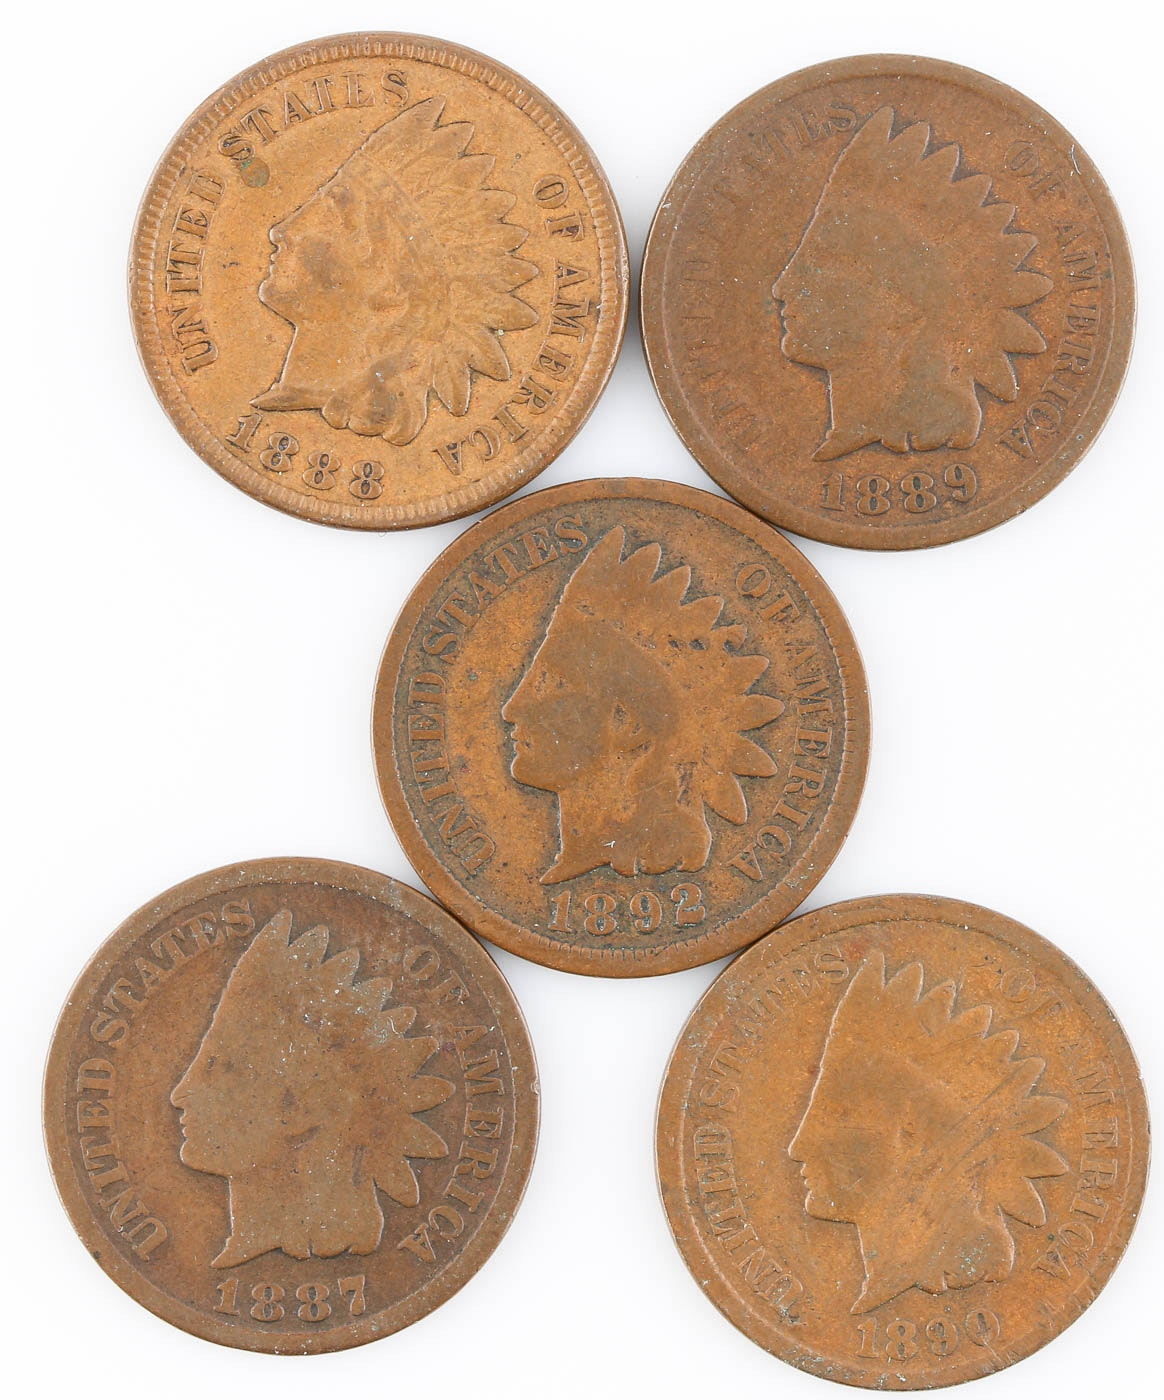 Group of Five Indian Head Cents: 1887, 1888, 1889, 1890, and 1892